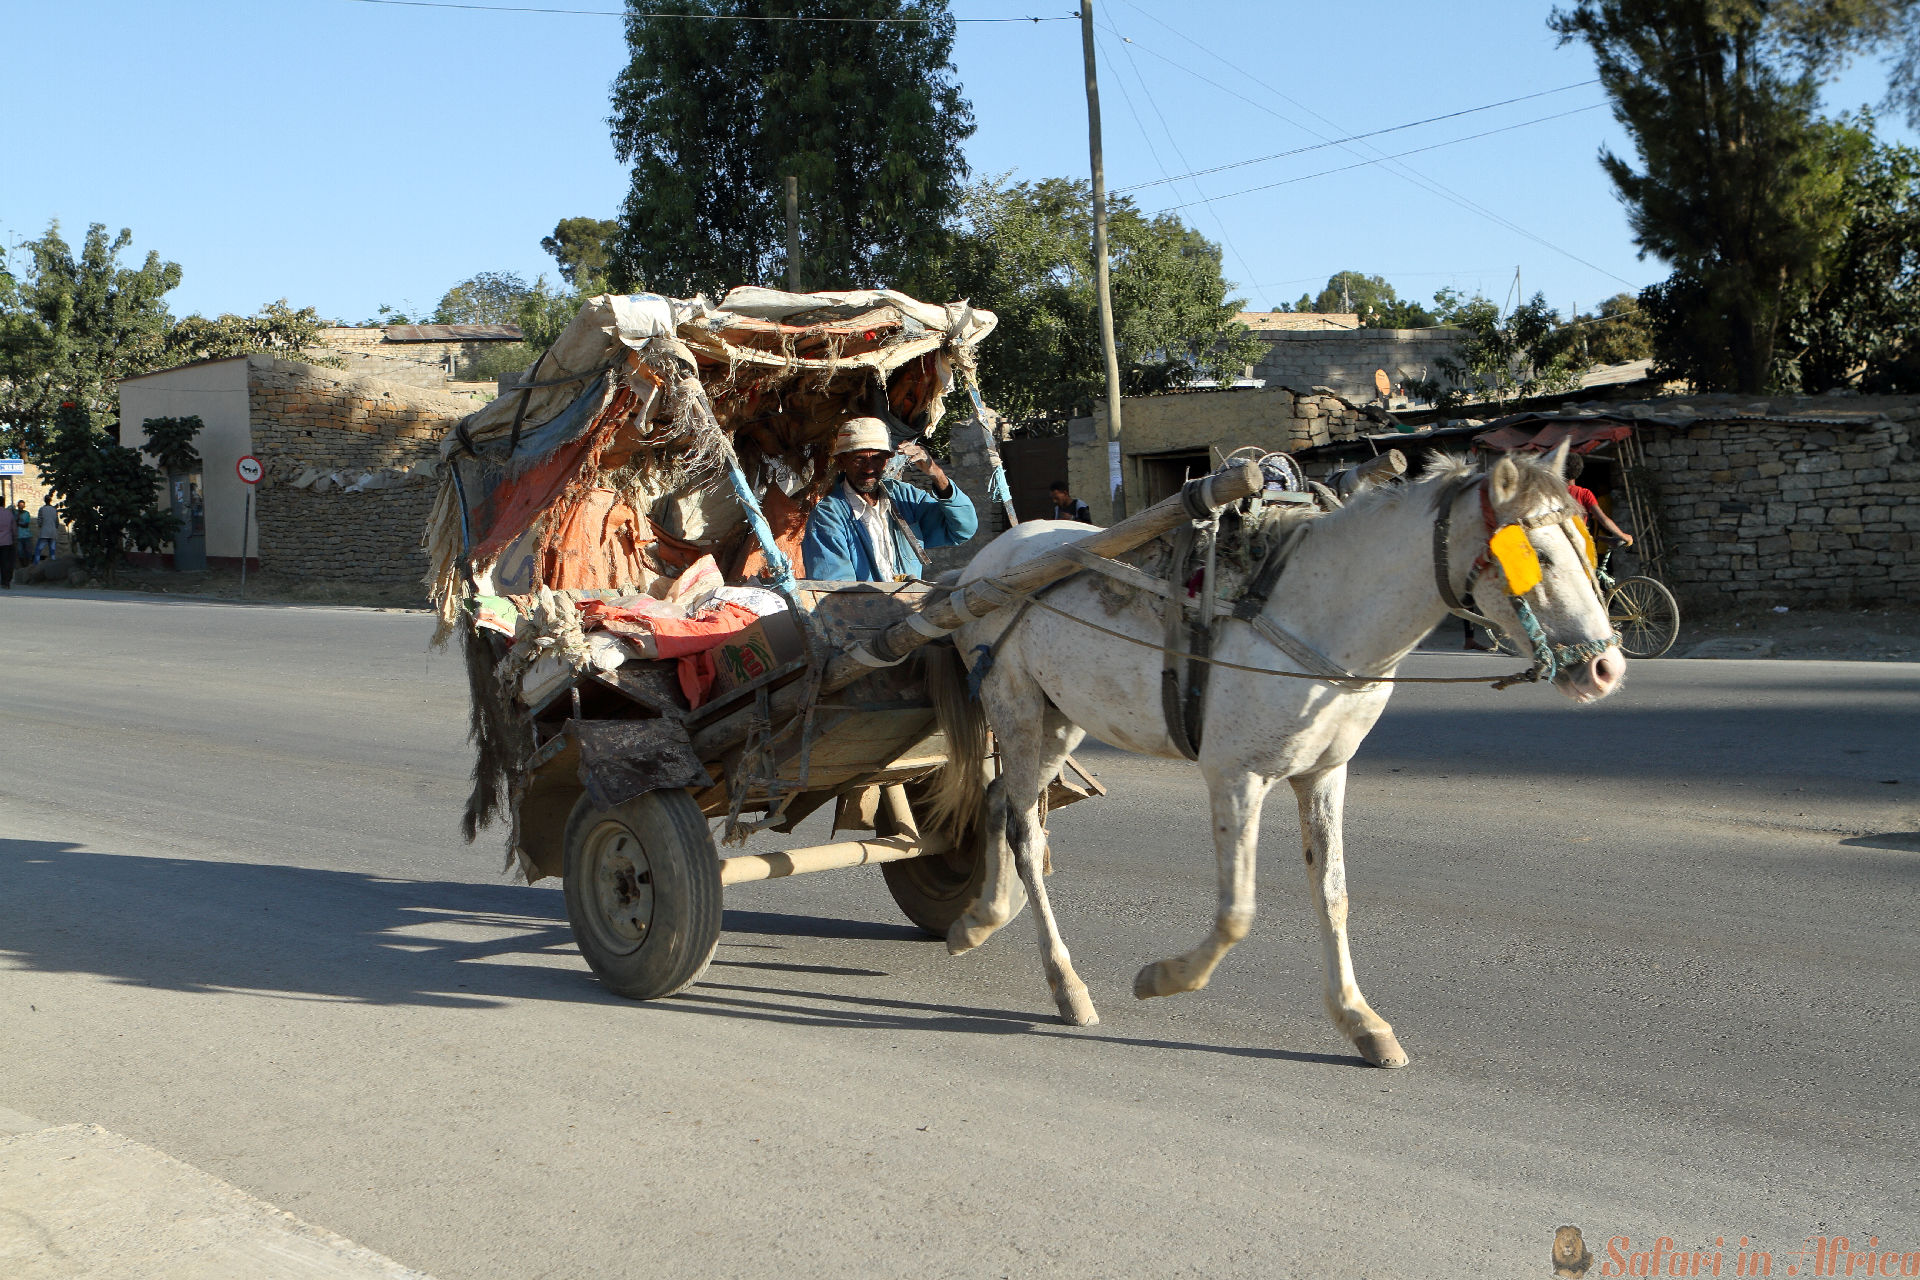 A Horse carriage in the streets of Mekele in Ethiopia